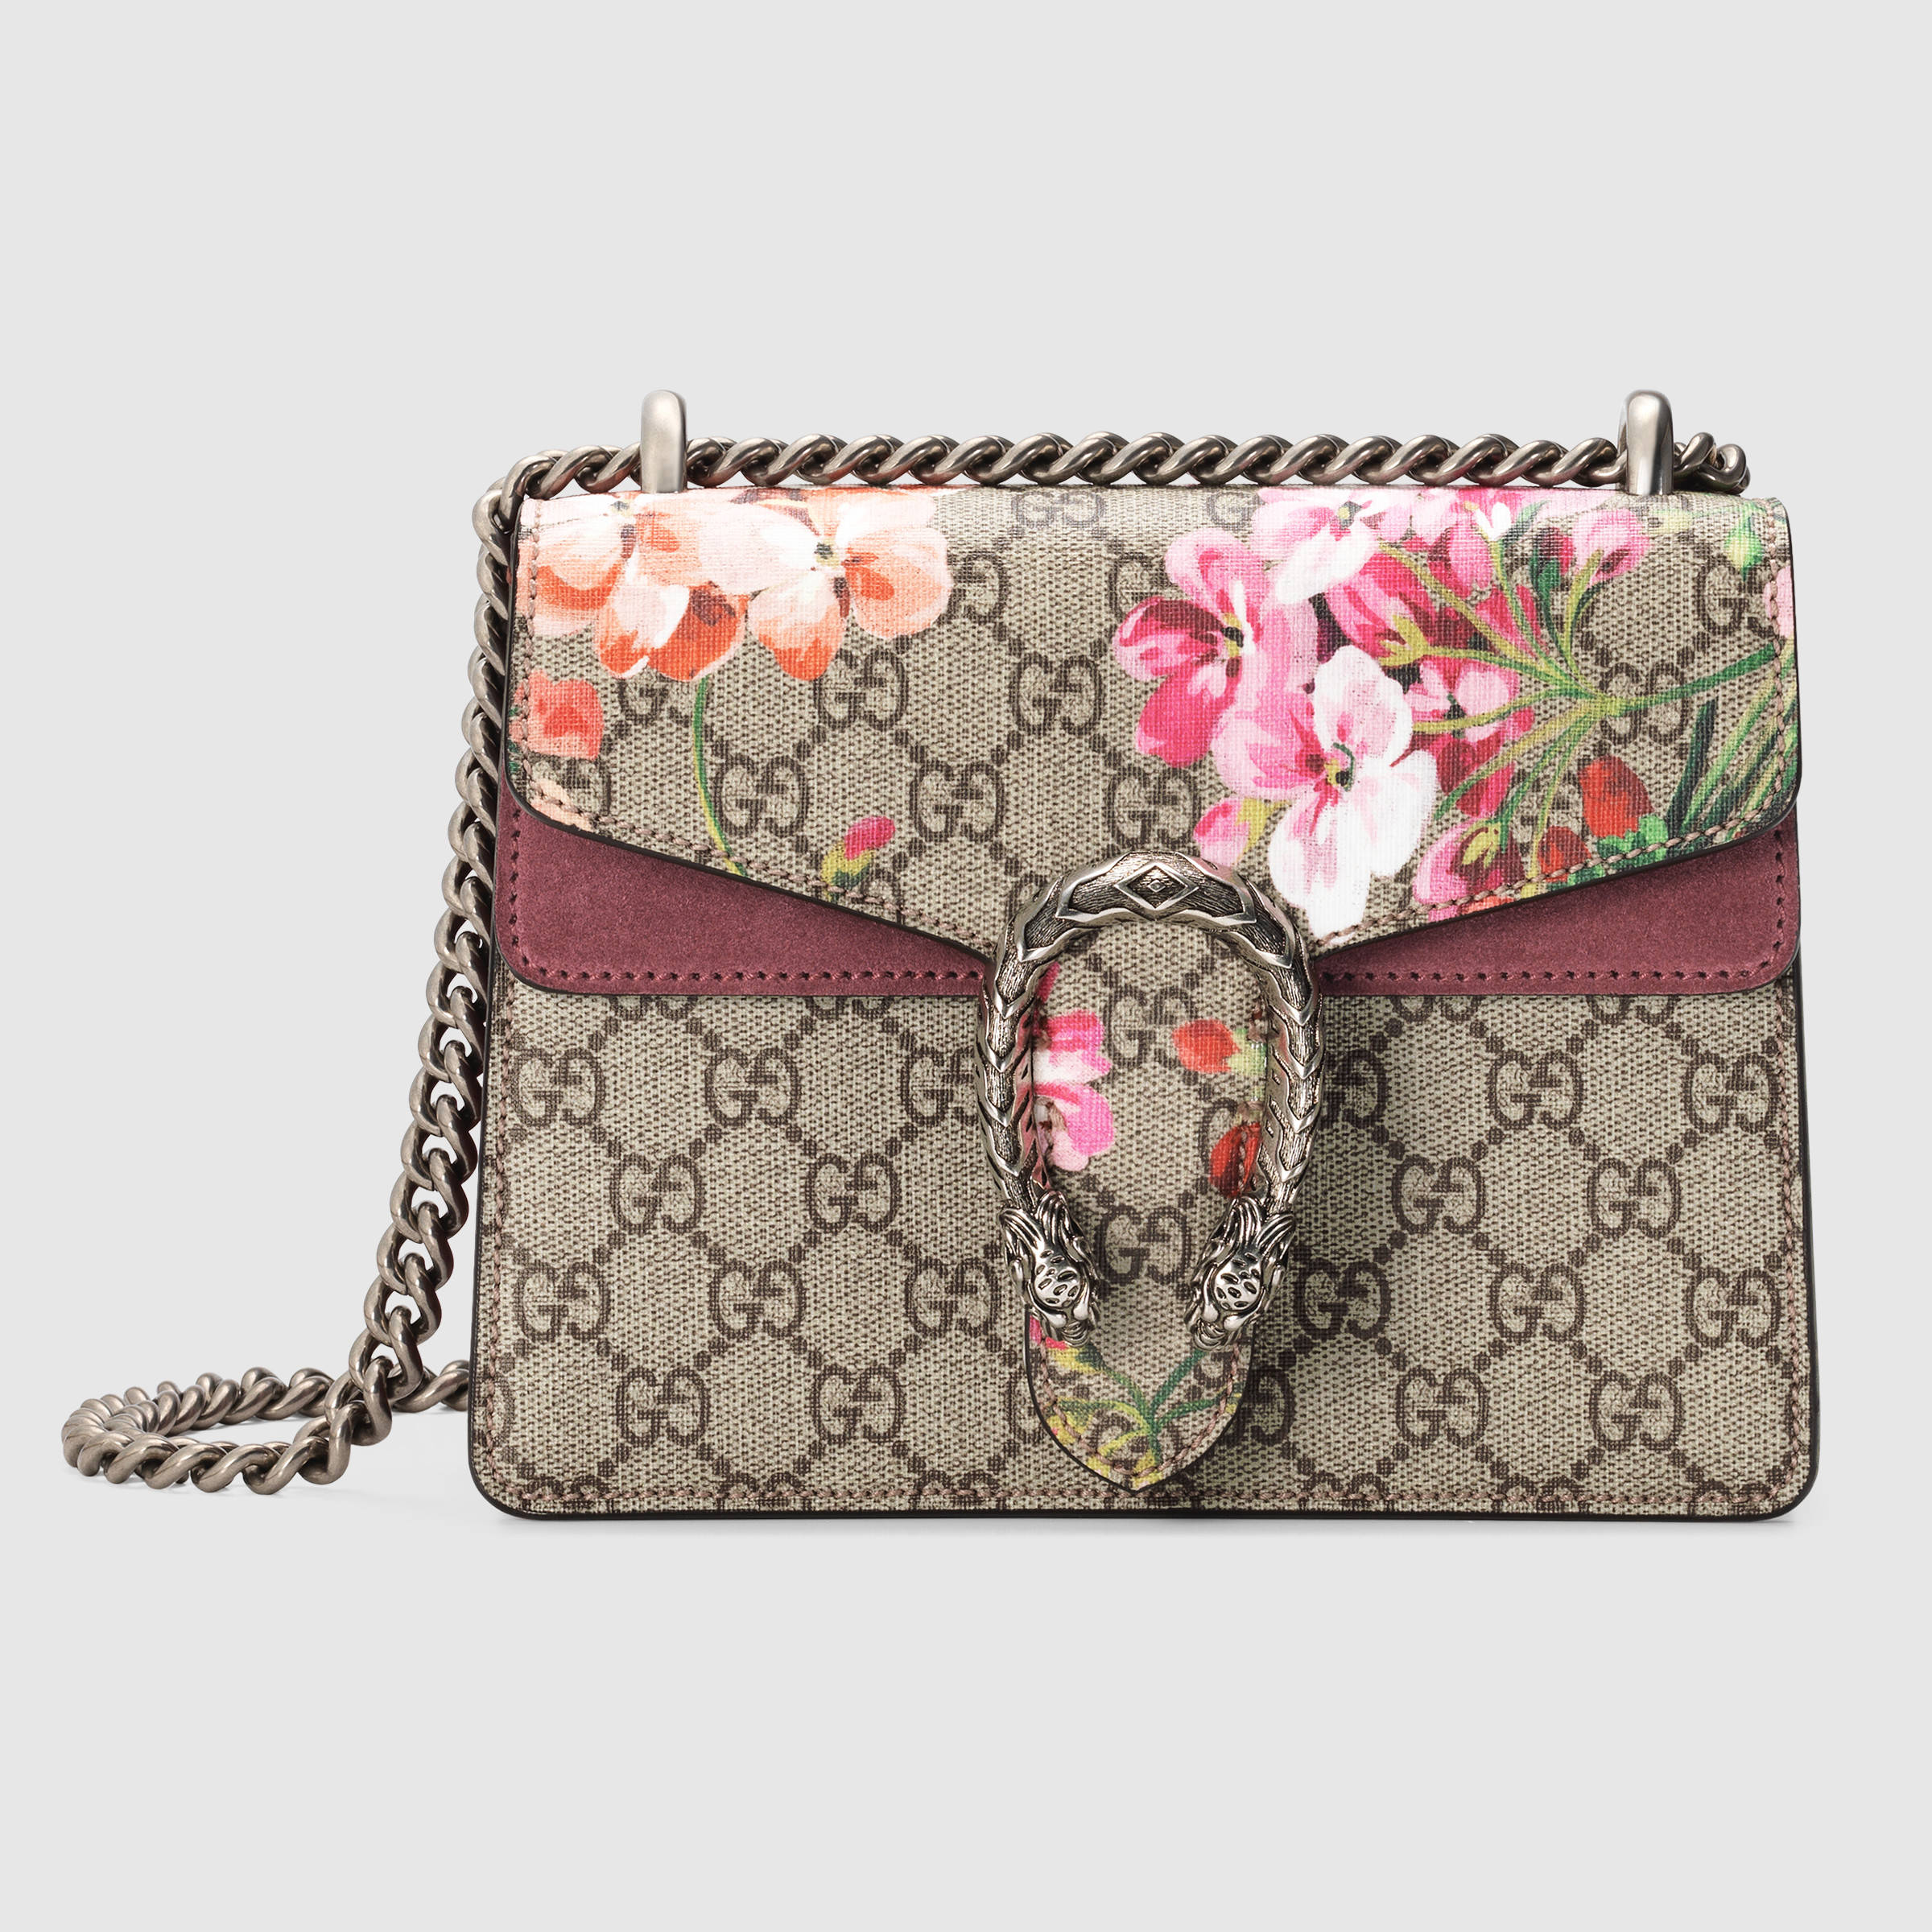 Gucci Dionysus Red Floral